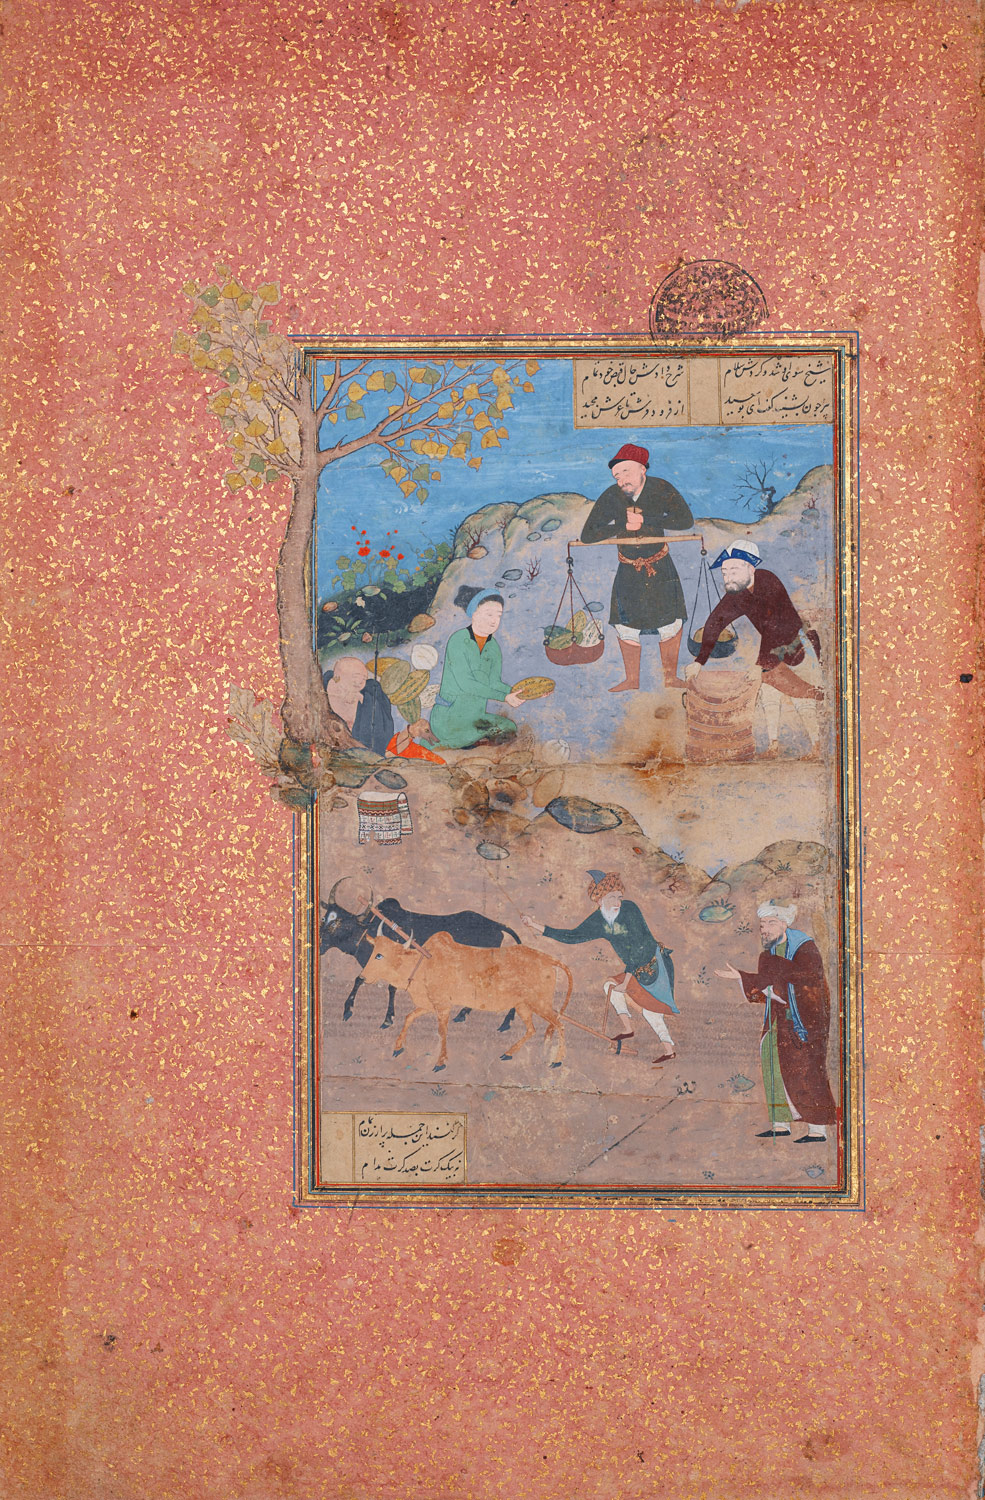 Shaikh Mahneh and the Villager, Folio 49r from a Mantiq al-tair (Language of the Birds)